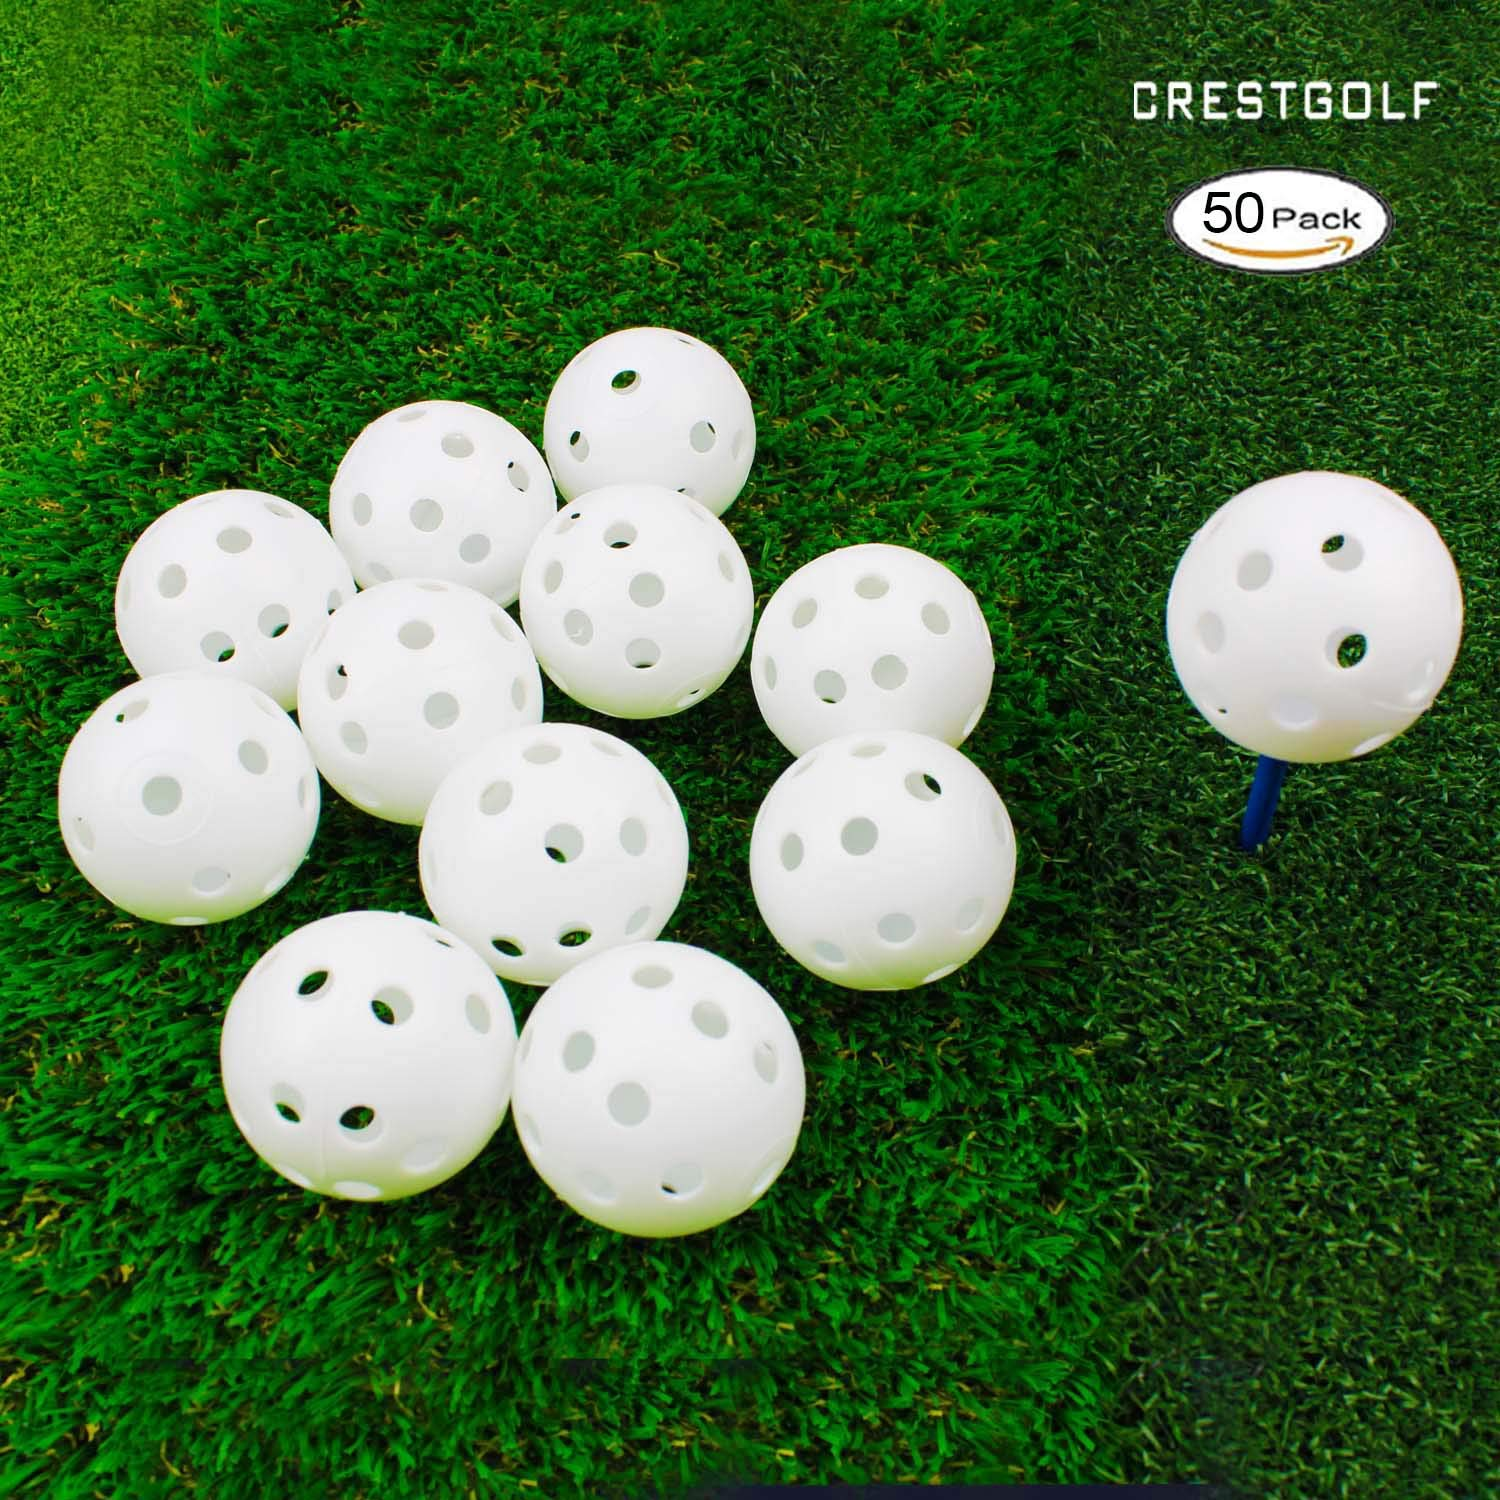 Crestgolf 12/50 Pack Plastic Golf Training Balls - Airflow Hollow 40mm Golf Balls for Driving Range, Swing Practice, Home Use,Pet Play.(White,50pack) by Crestgolf